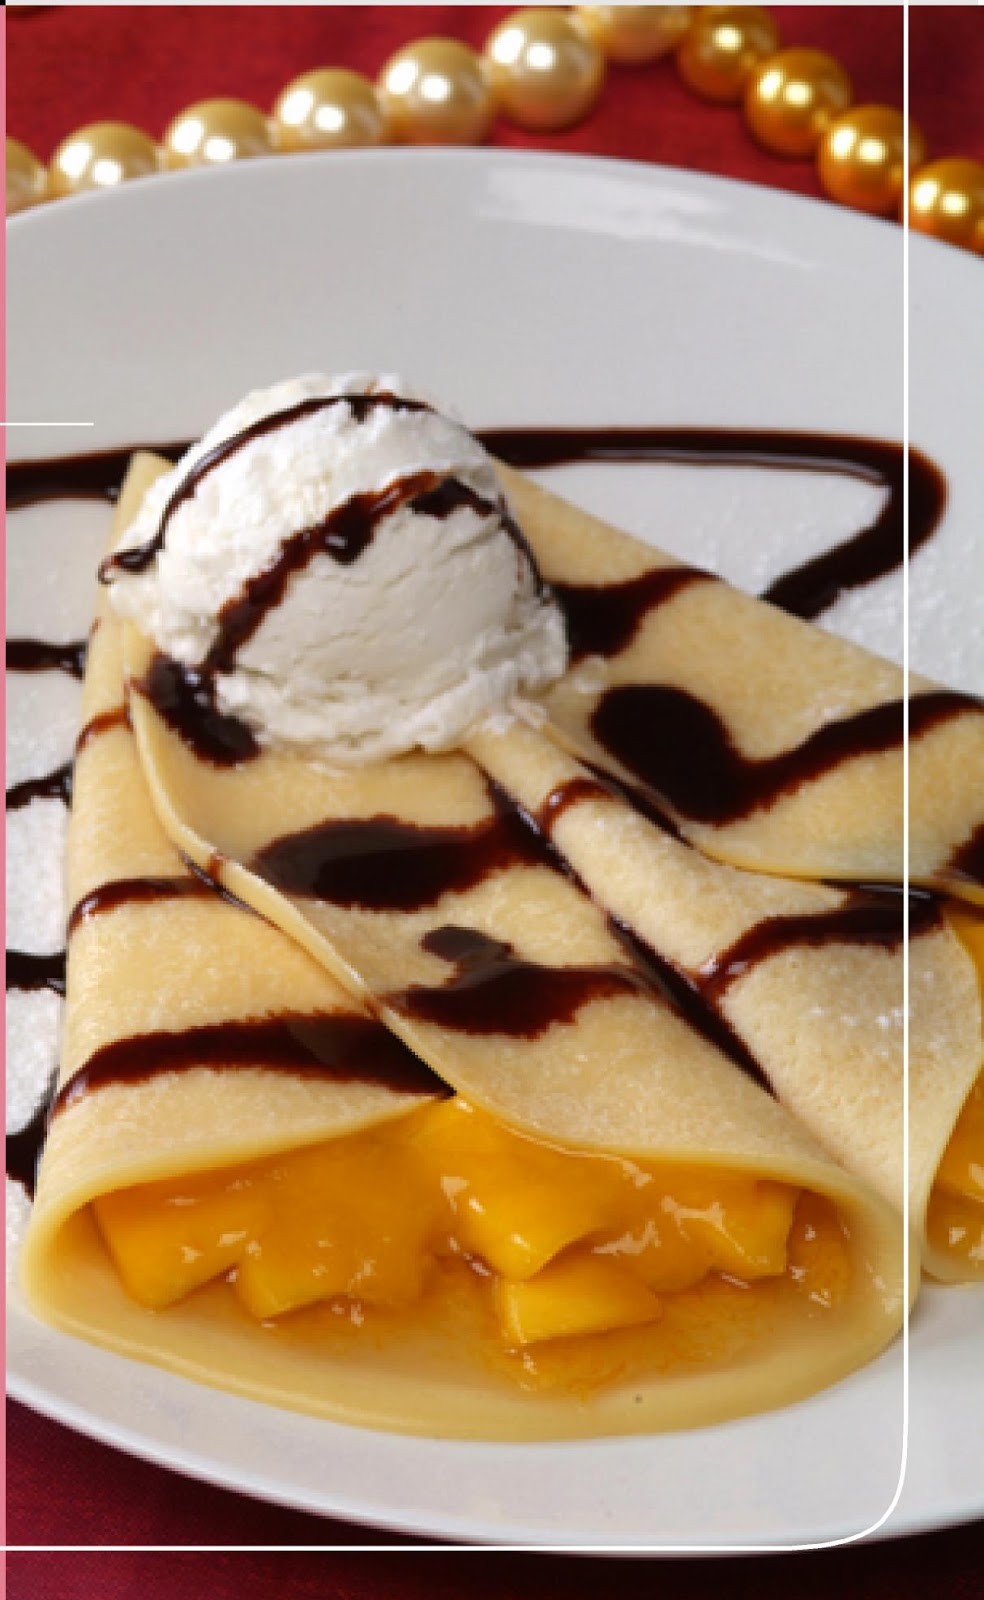 Crepe With Cherry And Sour Cream Yummy ⋆ Instyle Fashion One